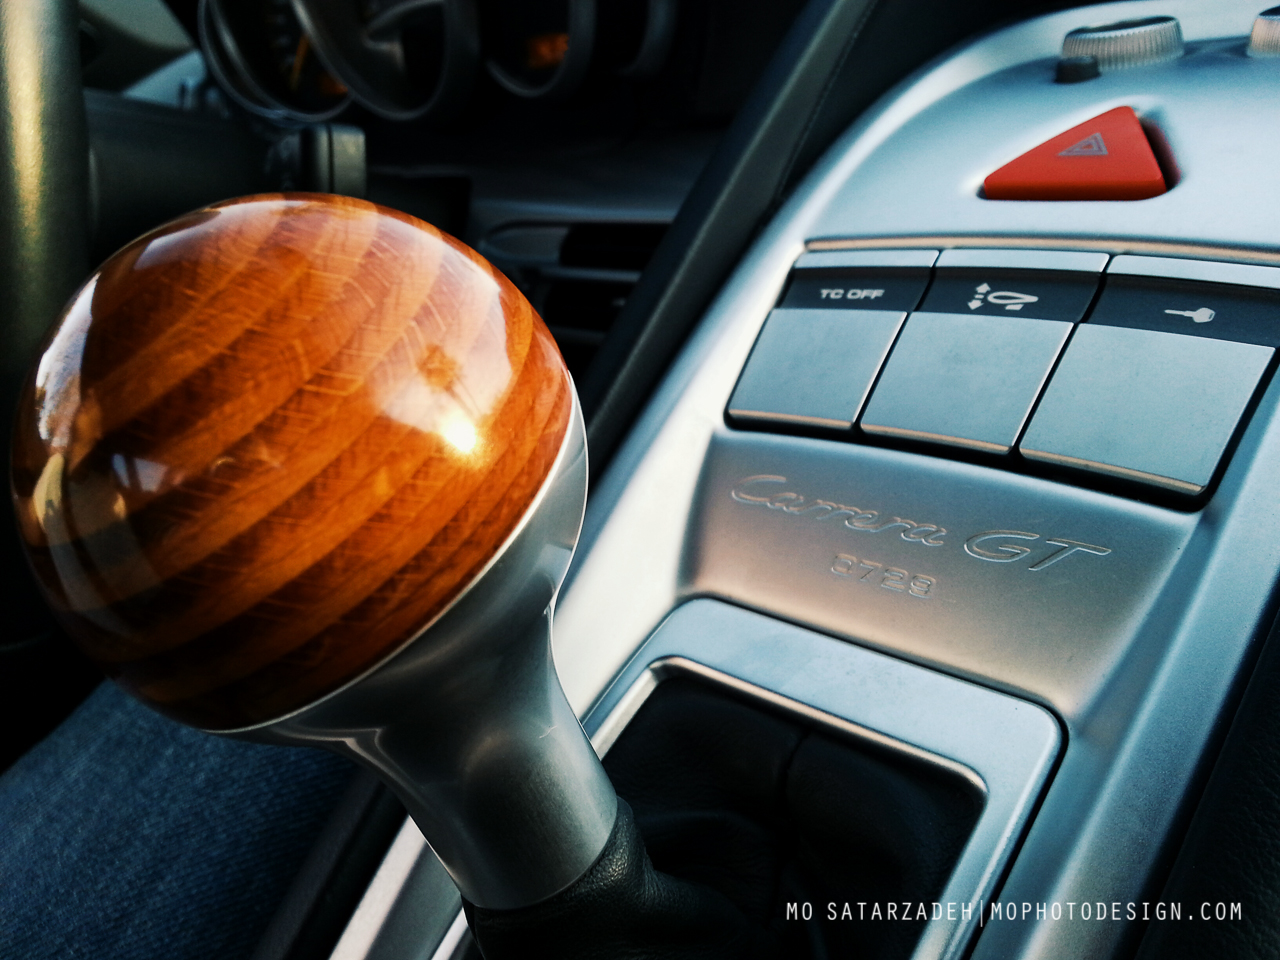 The most technical German car with the most un-German feature - a beach wood shift knob. Quite possibly one of my favorite design details on a car.